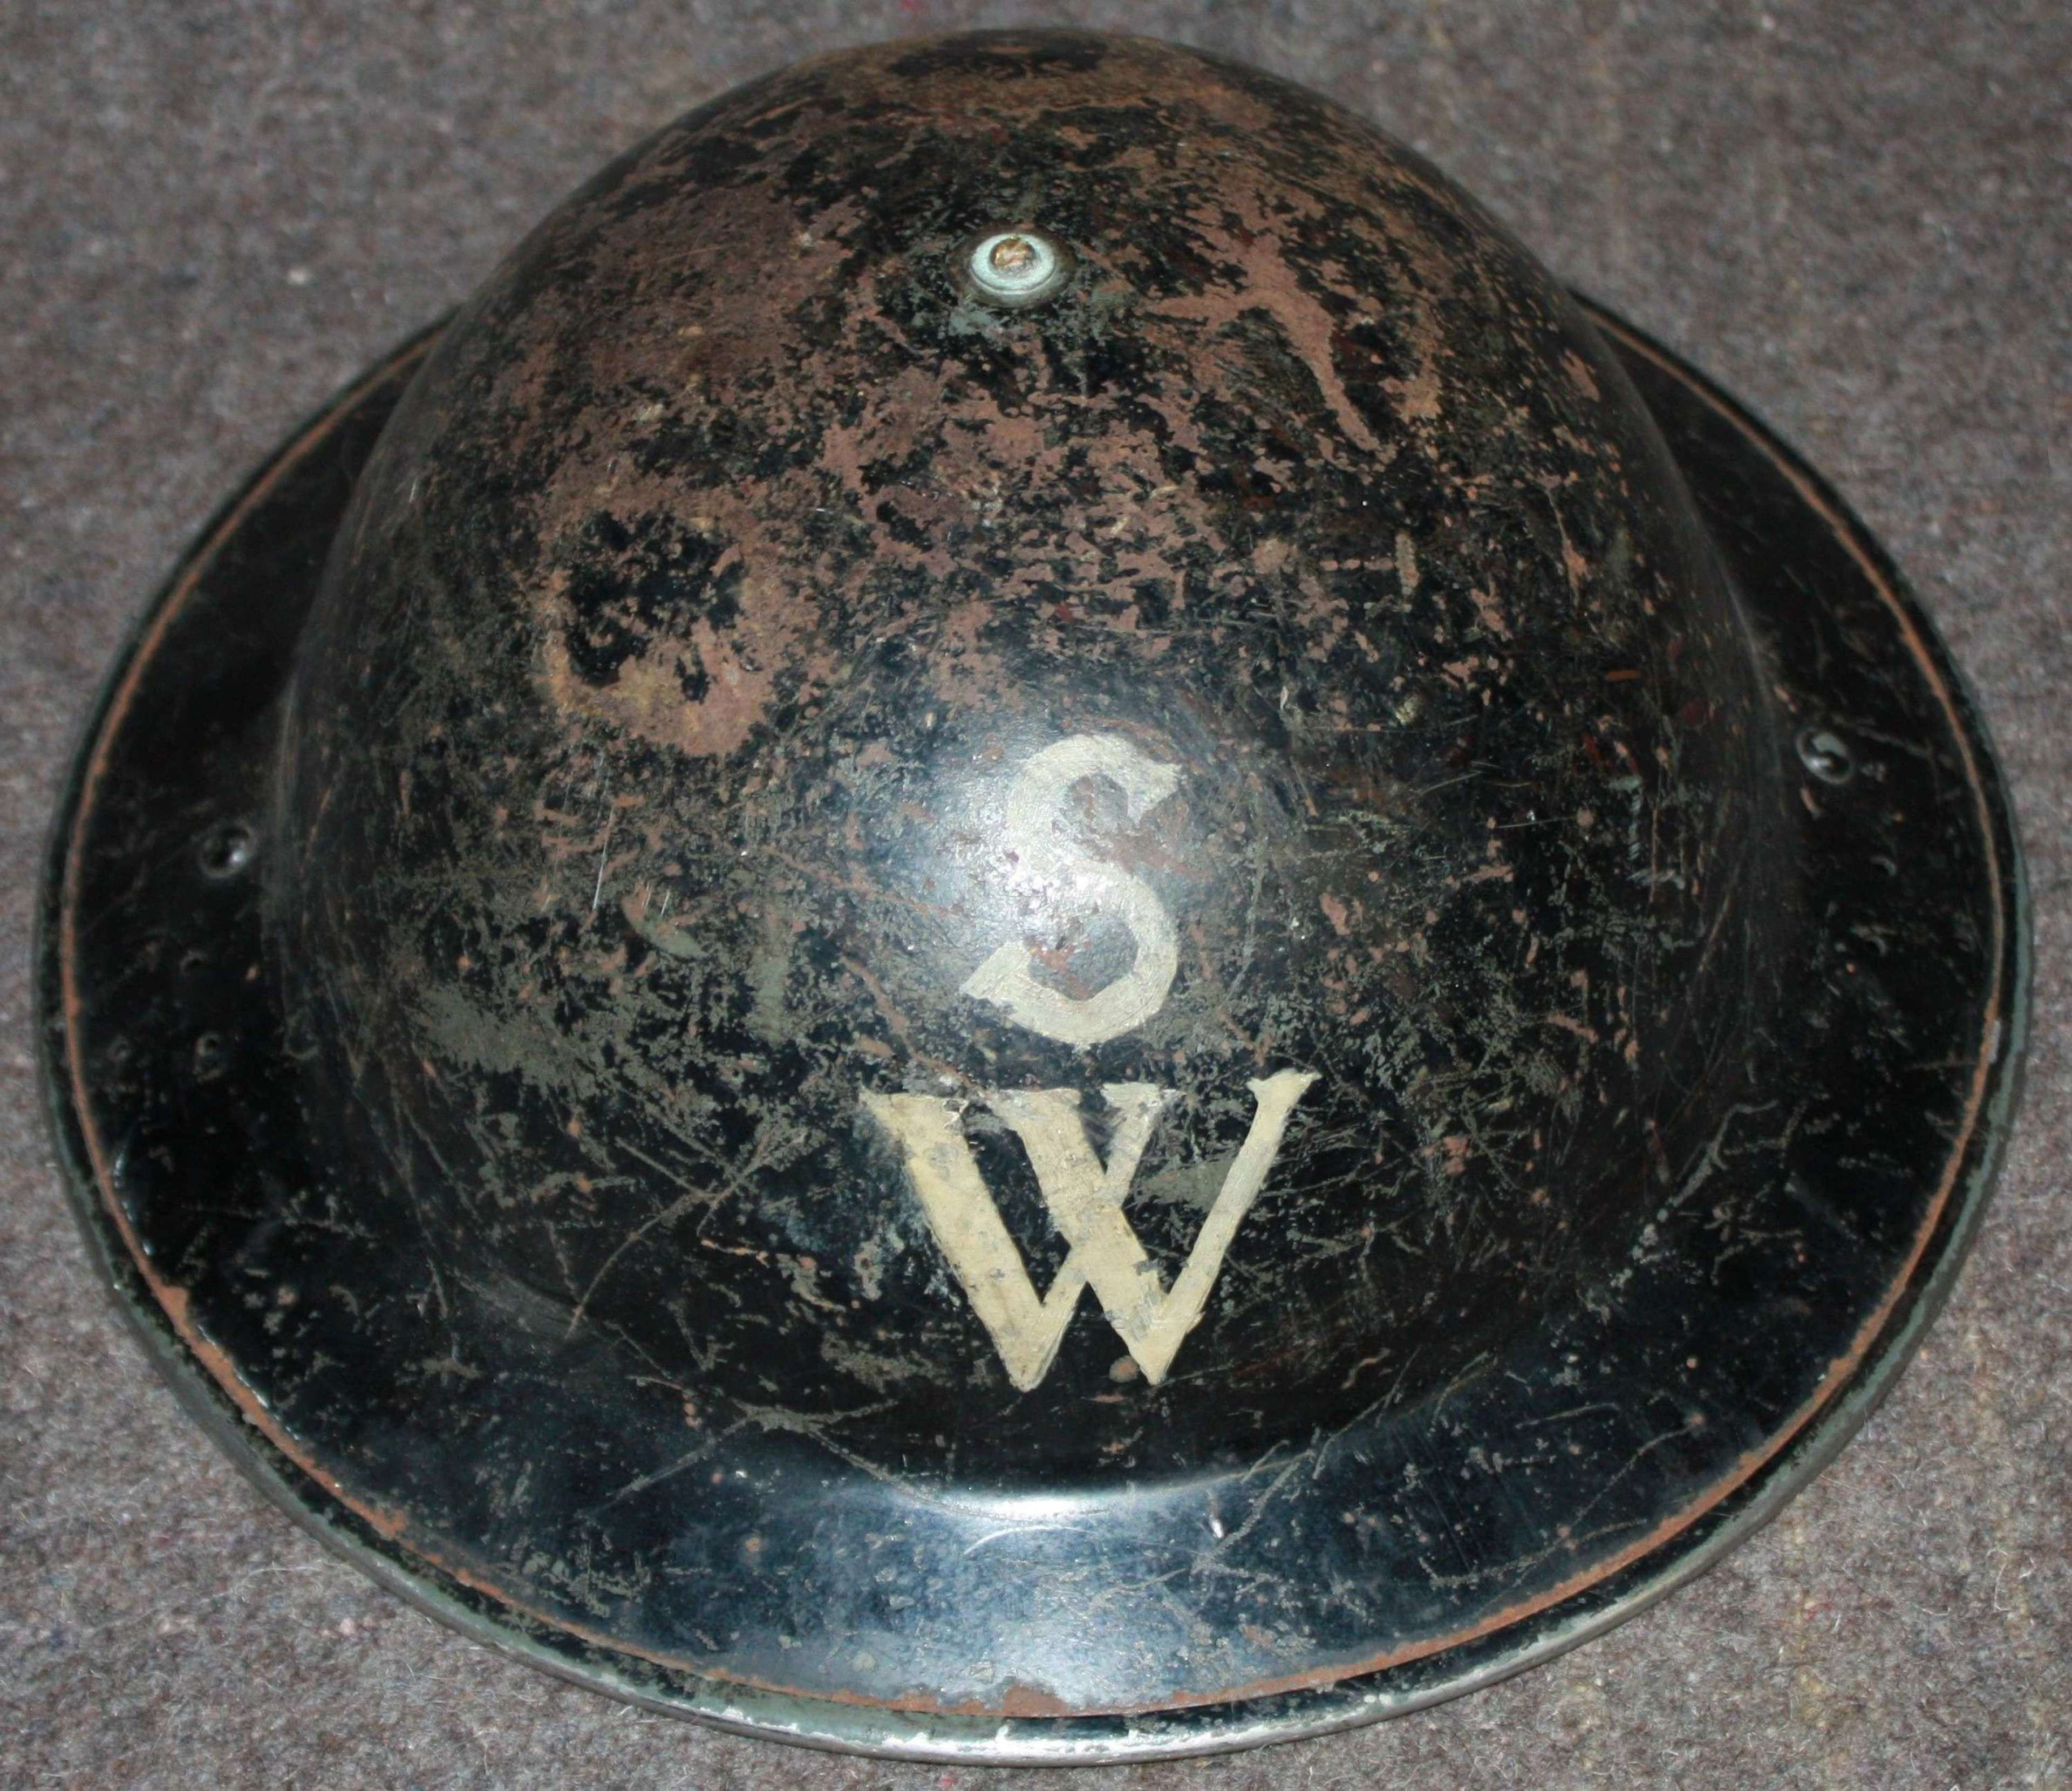 A GOOD USED EXAMPLE OF A SHELTER WARDEN / SCHOOL WARDENS HELMET